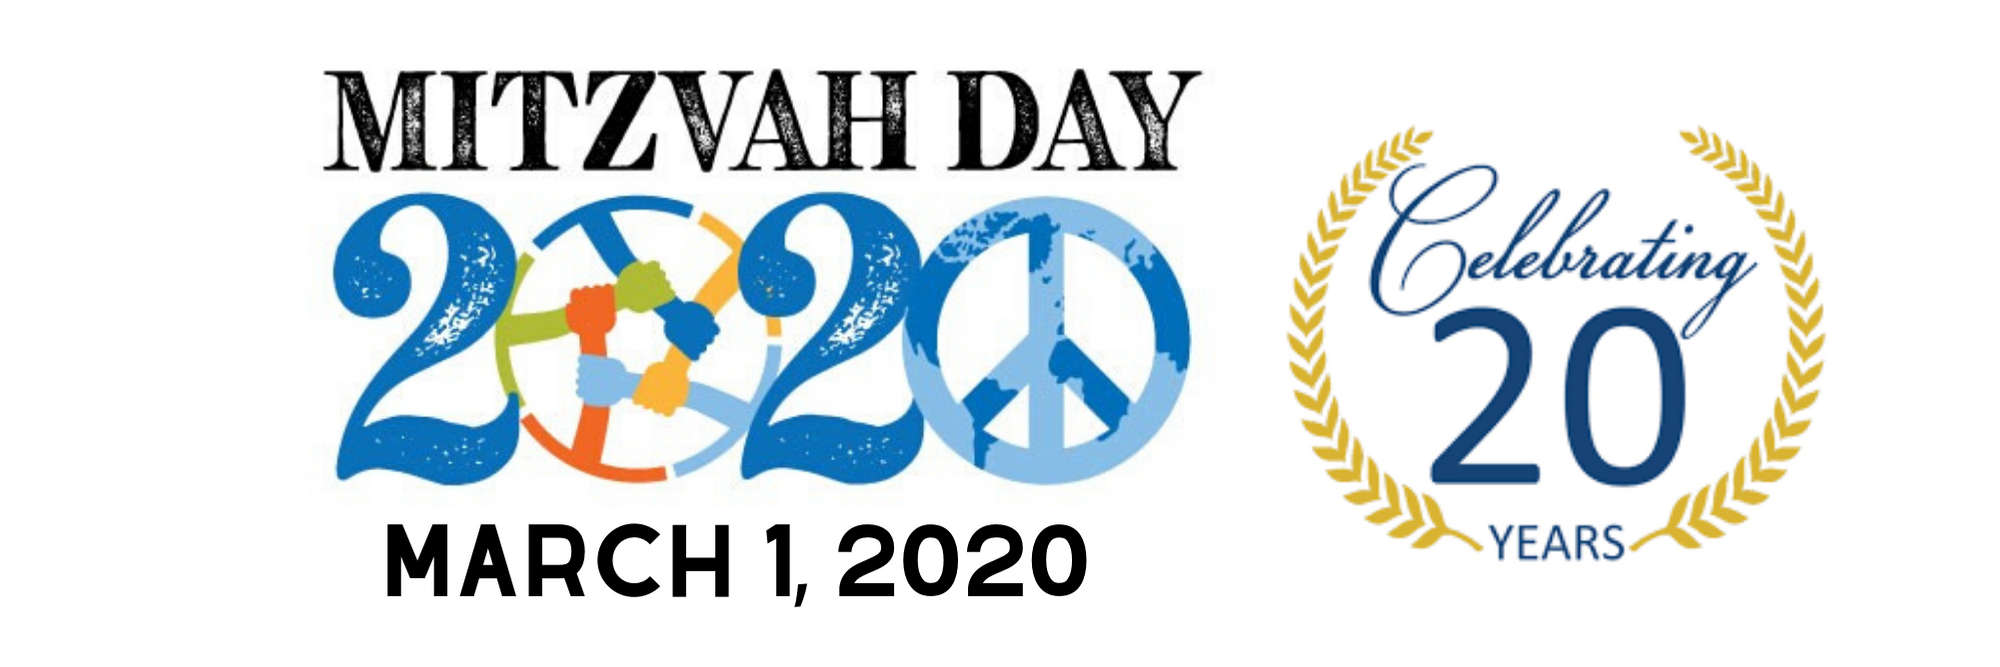 """<a href=""""https://www.templebethemet.org/community/mitzvah-day""""                                     target="""""""">                                                                 <span class=""""slider_title"""">                                     Mitzvah Day - 20 Year Celebration                                </span>                                                                 </a>                                                                                                                                                                                       <span class=""""slider_description"""">Sunday, March 1 @ 10:00 AM RSVP Today!</span>                                                                                     <a href=""""https://www.templebethemet.org/community/mitzvah-day"""" class=""""slider_link""""                             target="""""""">                             RSVP Today                            </a>"""